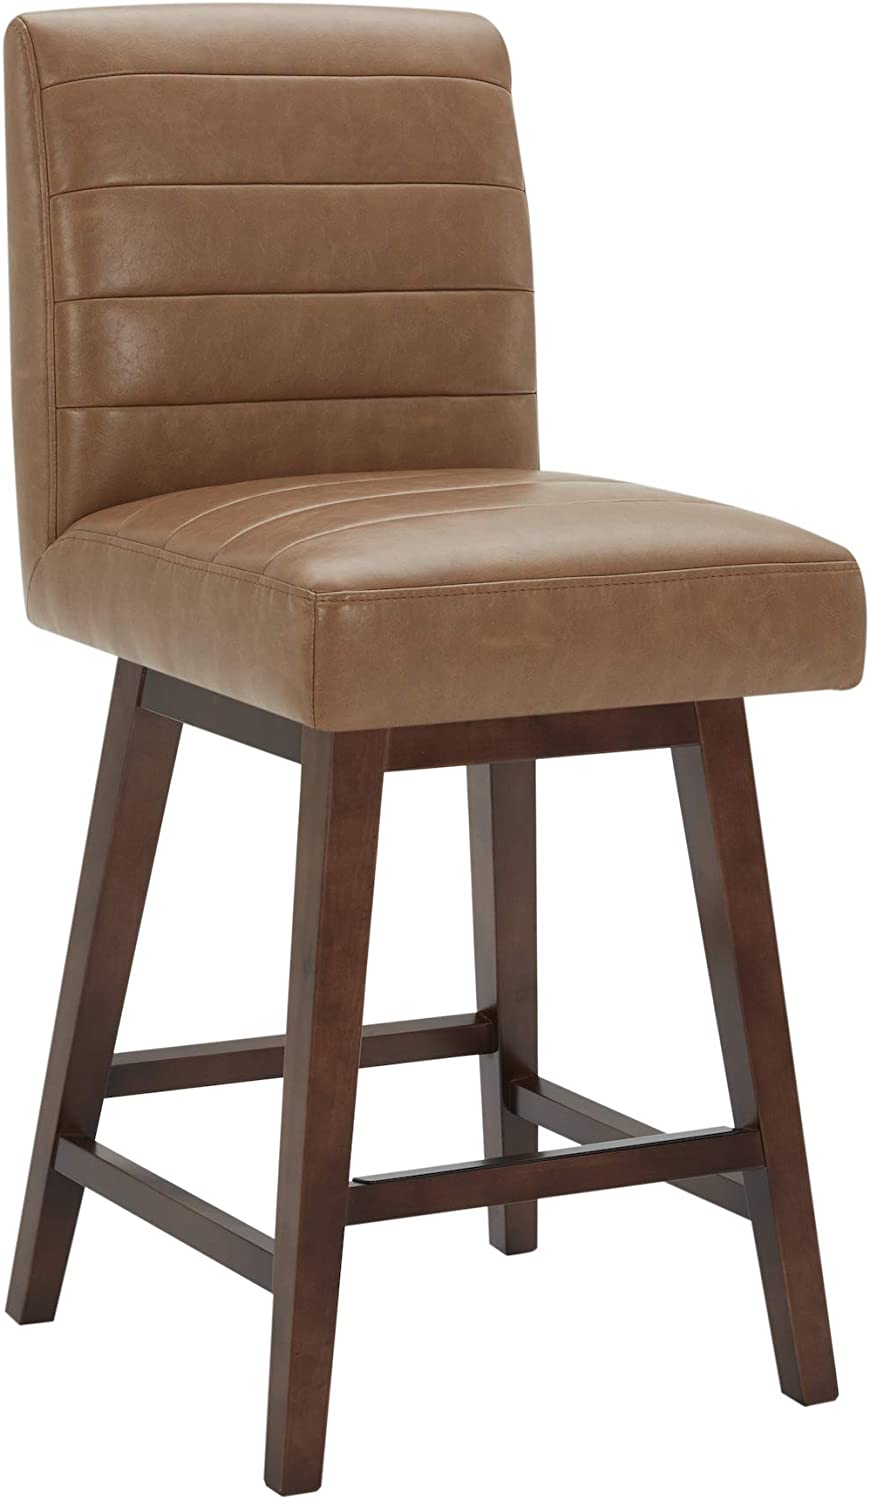 CHITA Modern Counter Height Swivel Barstool, Upholstered Leather Swivel Stool, 26